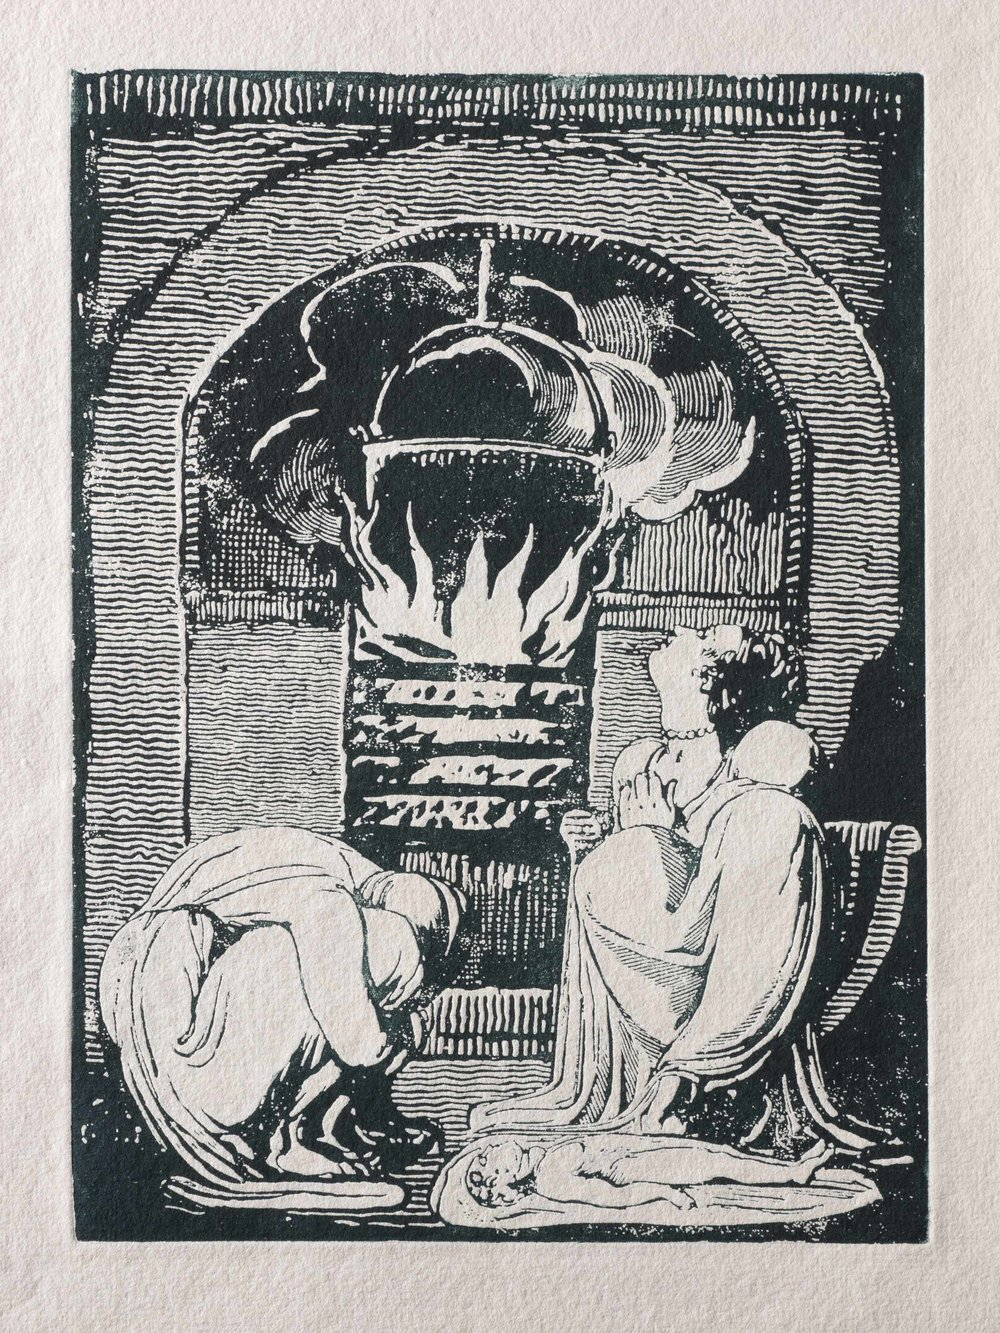 William-Blake-Plate-8,-Europe-a-Prophecy,-1794-Two-women-and-a-dead-child-before-a-hearth.jpg